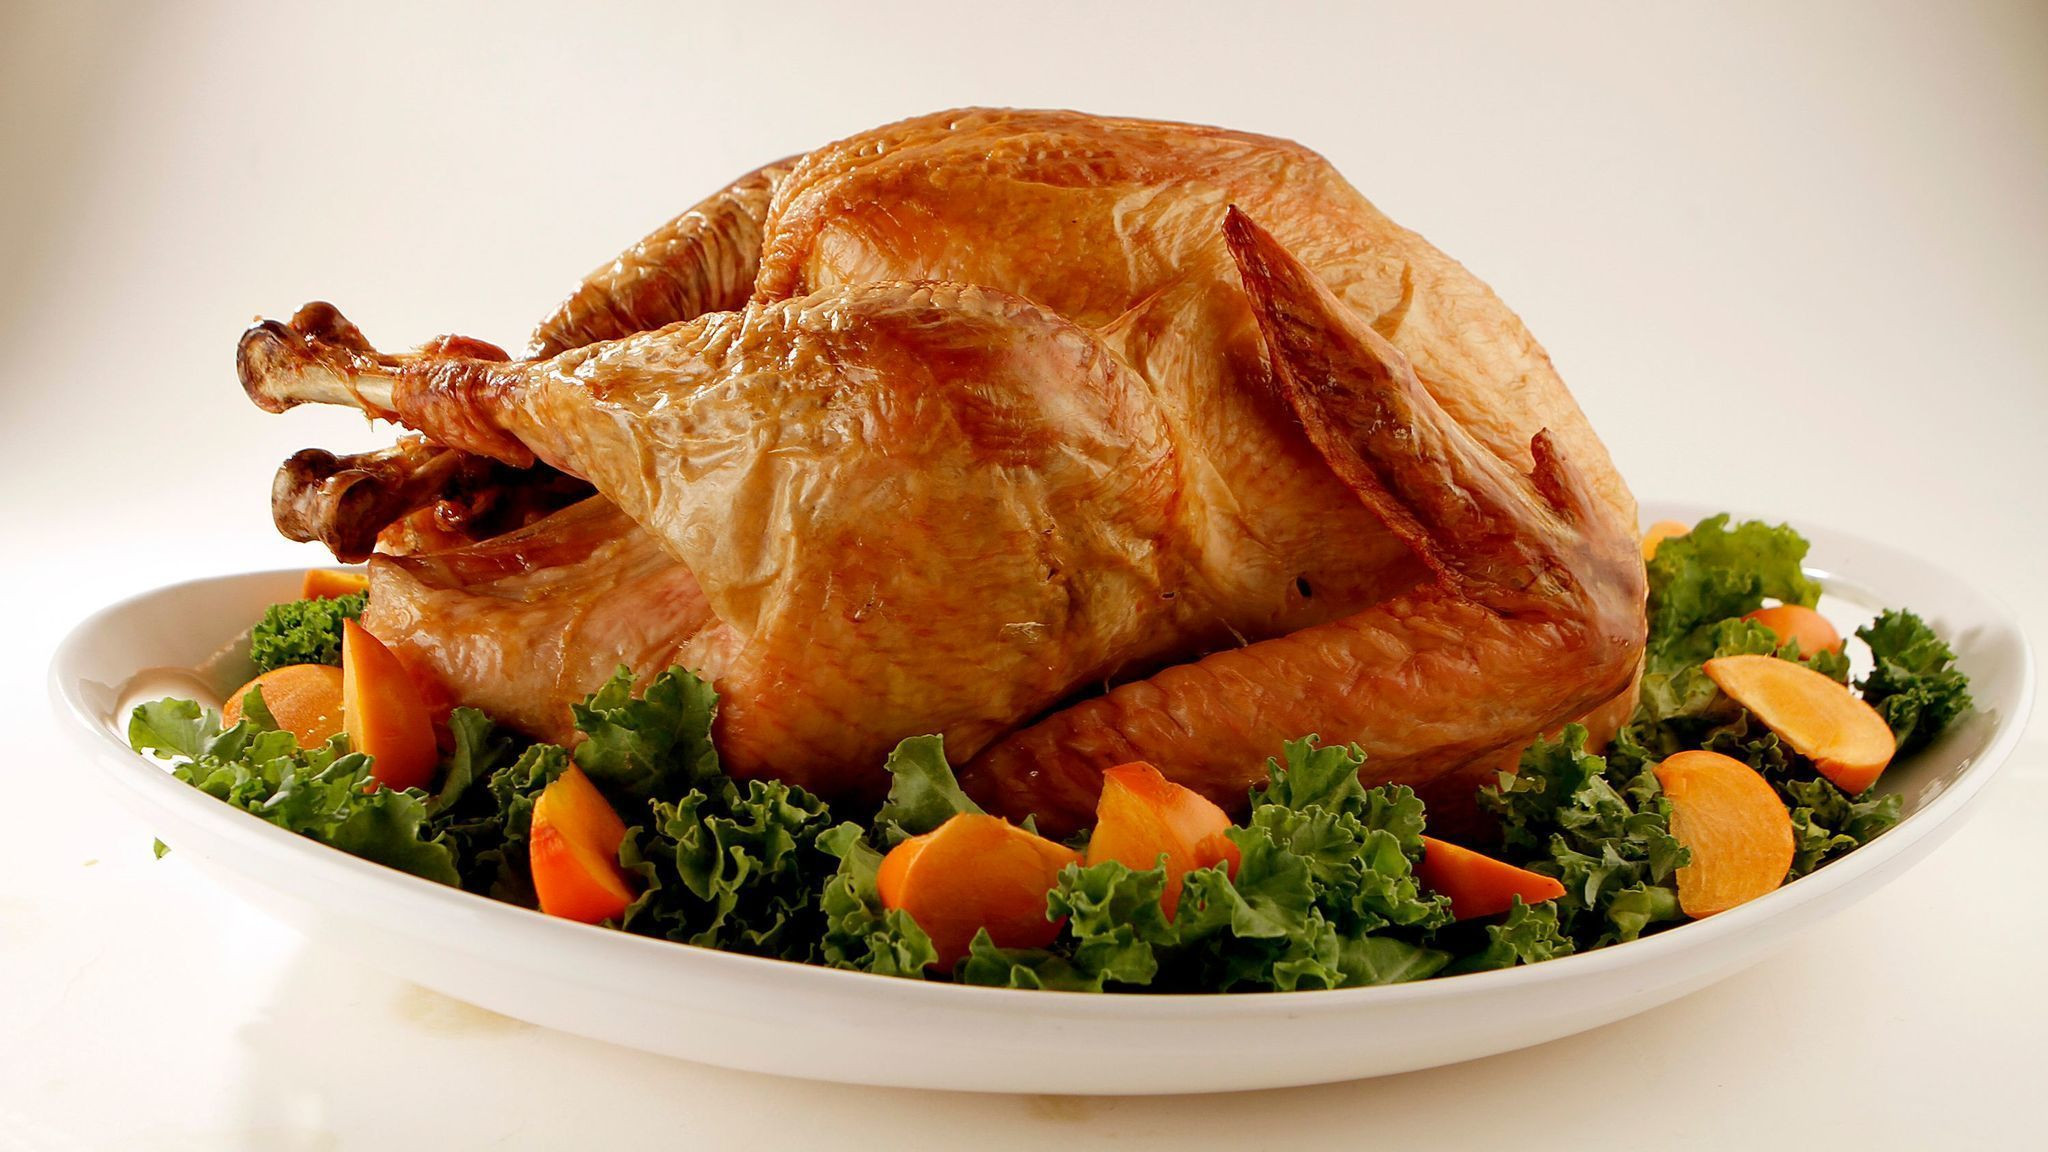 Thanksgiving Video Full Of Turkey  A beginner s guide to cooking a Thanksgiving turkey LA Times